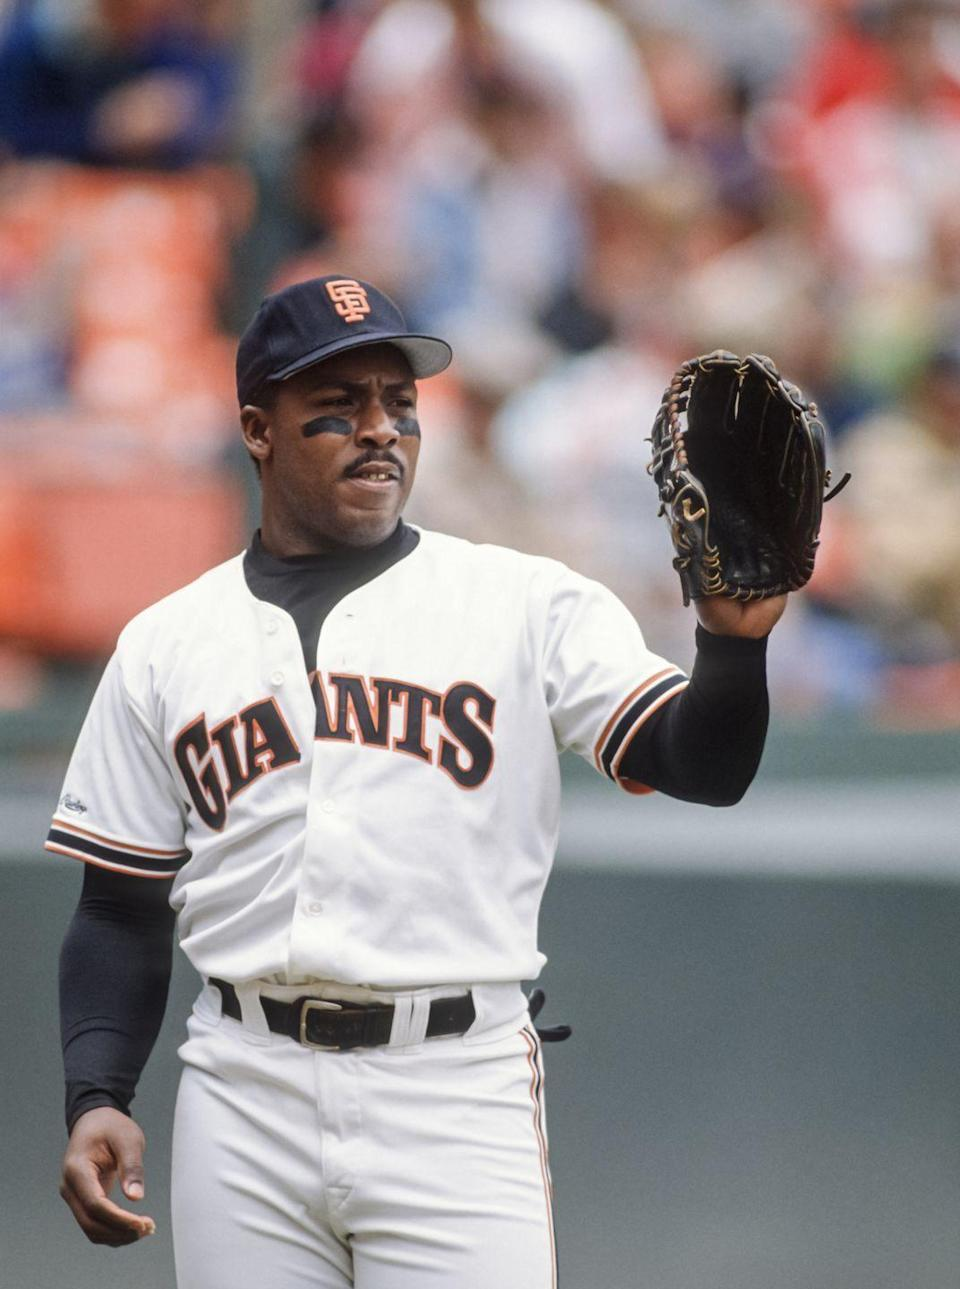 """<p><strong>April 26, 1989</strong>: Kevin Mitchell was a talented baseball player with a gift for the unexpected. It all came together for """"Mitch"""" in 1989, when he was named National League MVP—and made one of the wildest catches in baseball history.<br><br>Here's the scene: Mitchell's in left field at Busch Stadium when the Cardinals' Ozzie Smith hits a tailing fly ball toward the left-field line. Mitchell runs hard—too hard, in fact. He overruns the fly ball, realizes it, and reaches back with his right hand—the one without a glove—to make a crazy, over-the-head catch.<br><br>Mitchell's explanation: """"I was running as hard as I could, and it just came back on me. All I could do was stick up my hand and there it was.""""<br> </p>"""